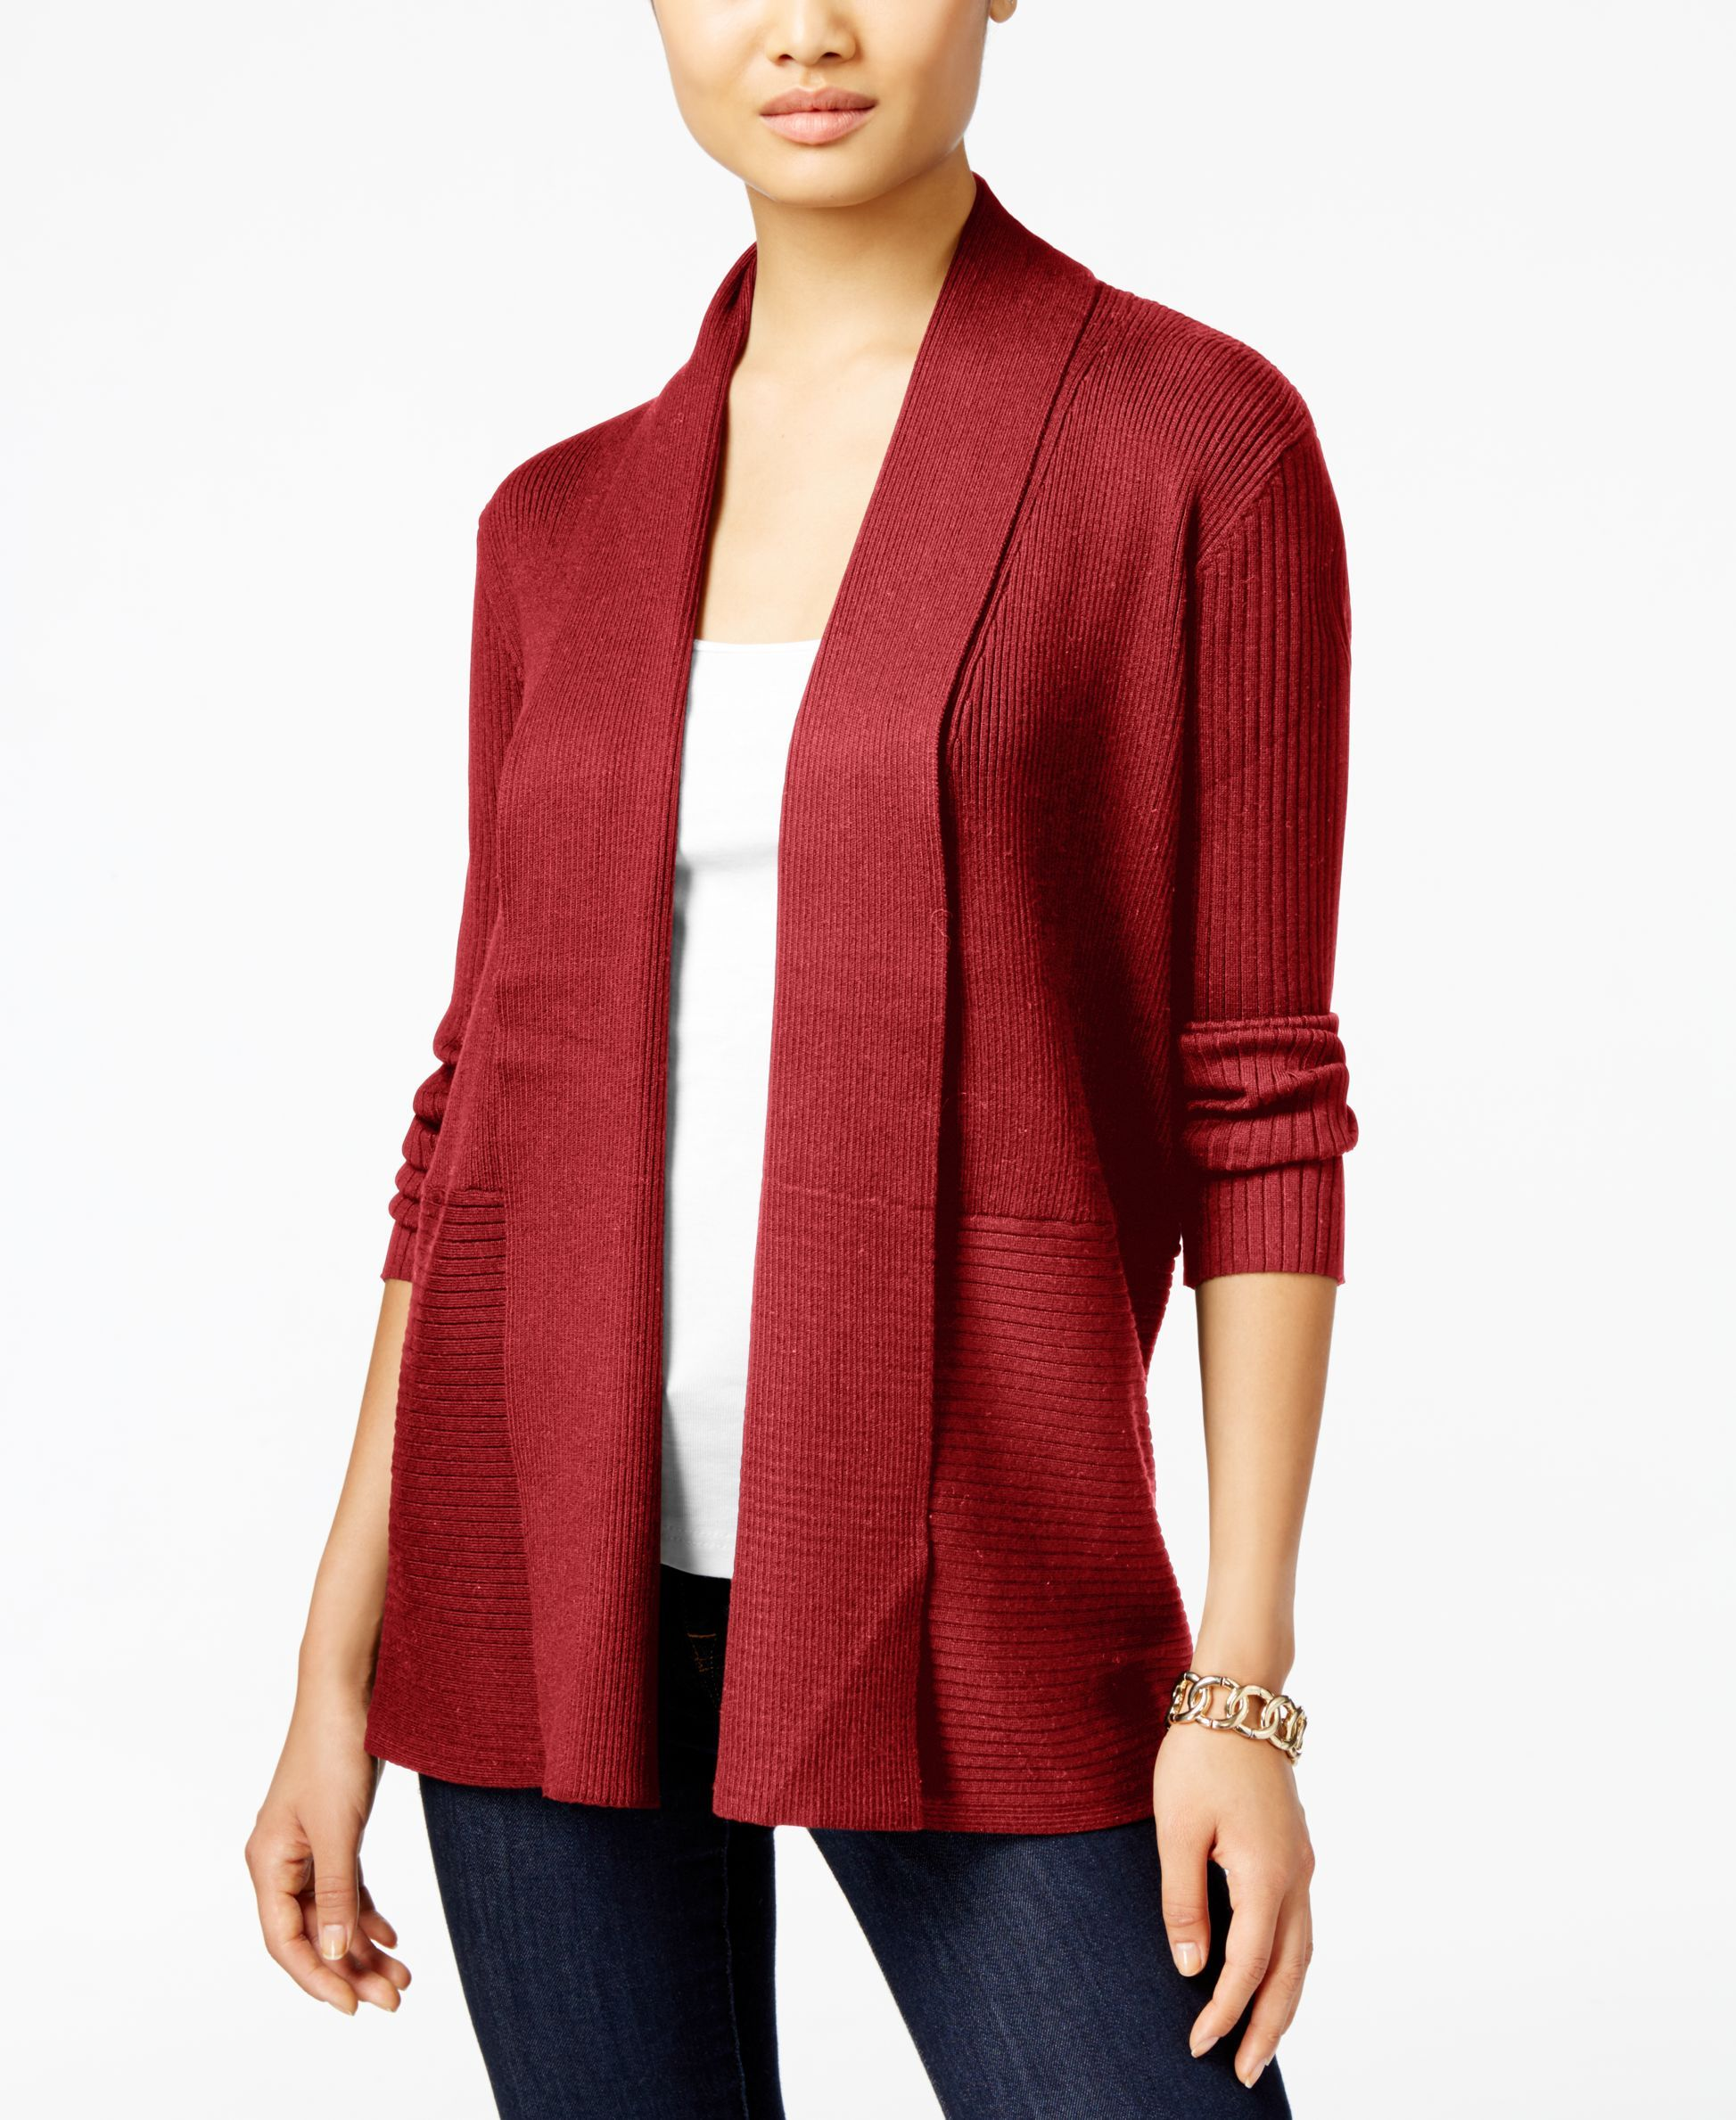 JM Collection Cropped Ruched-Sleeve Cardigan, Bright Wine